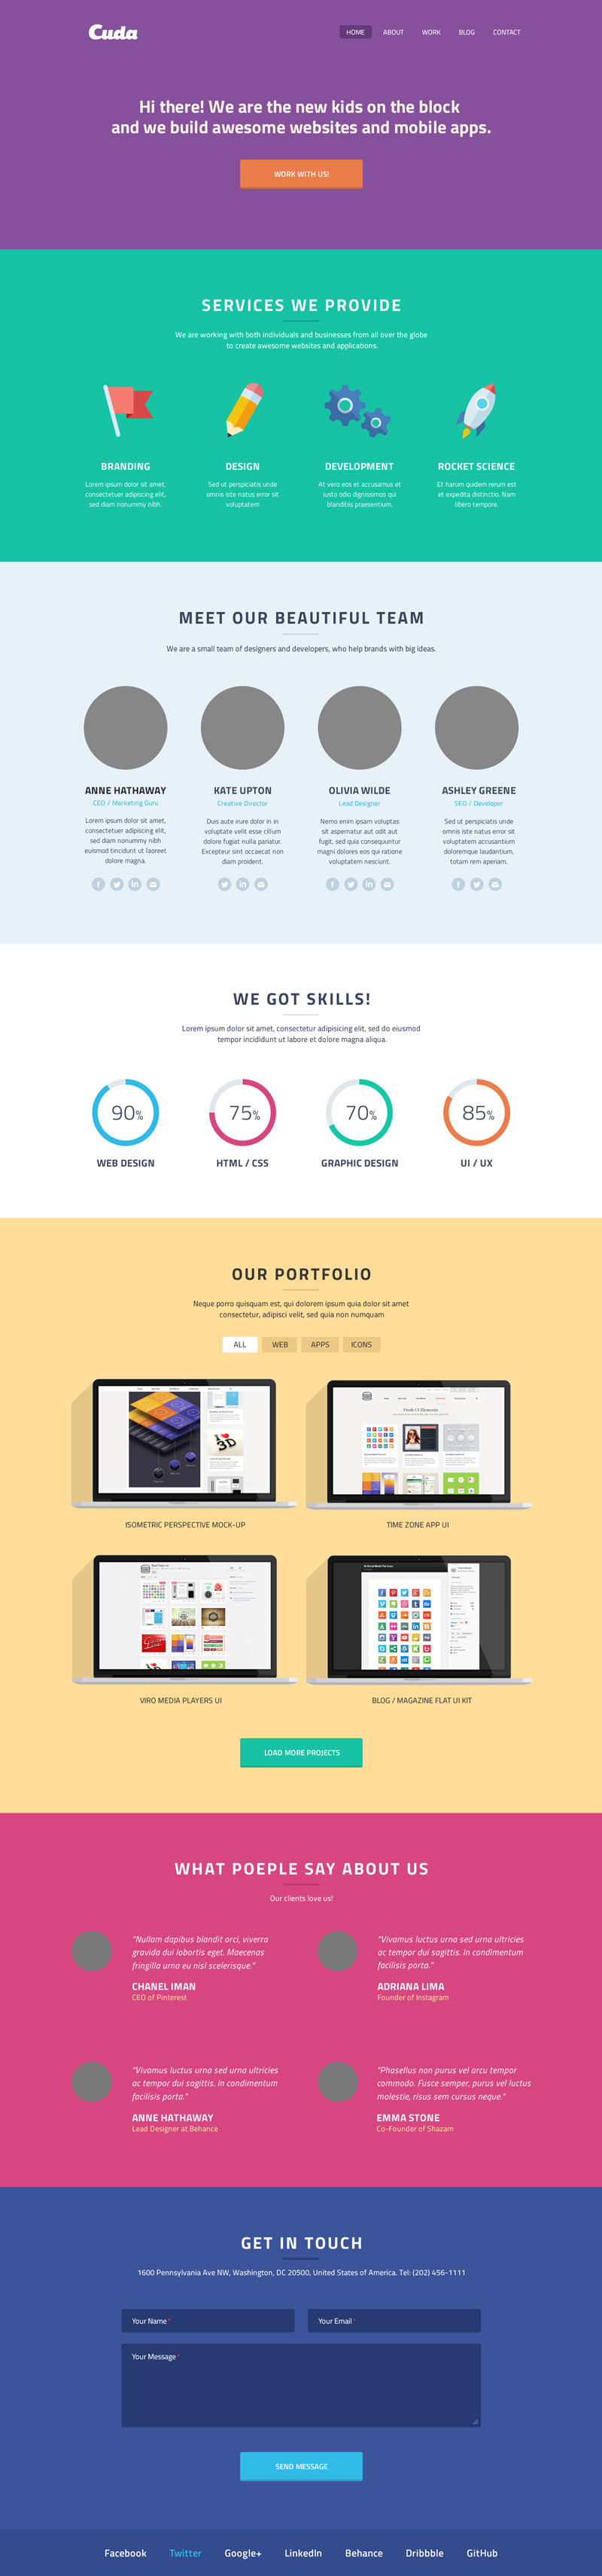 Single Page Portfolio Template Psd